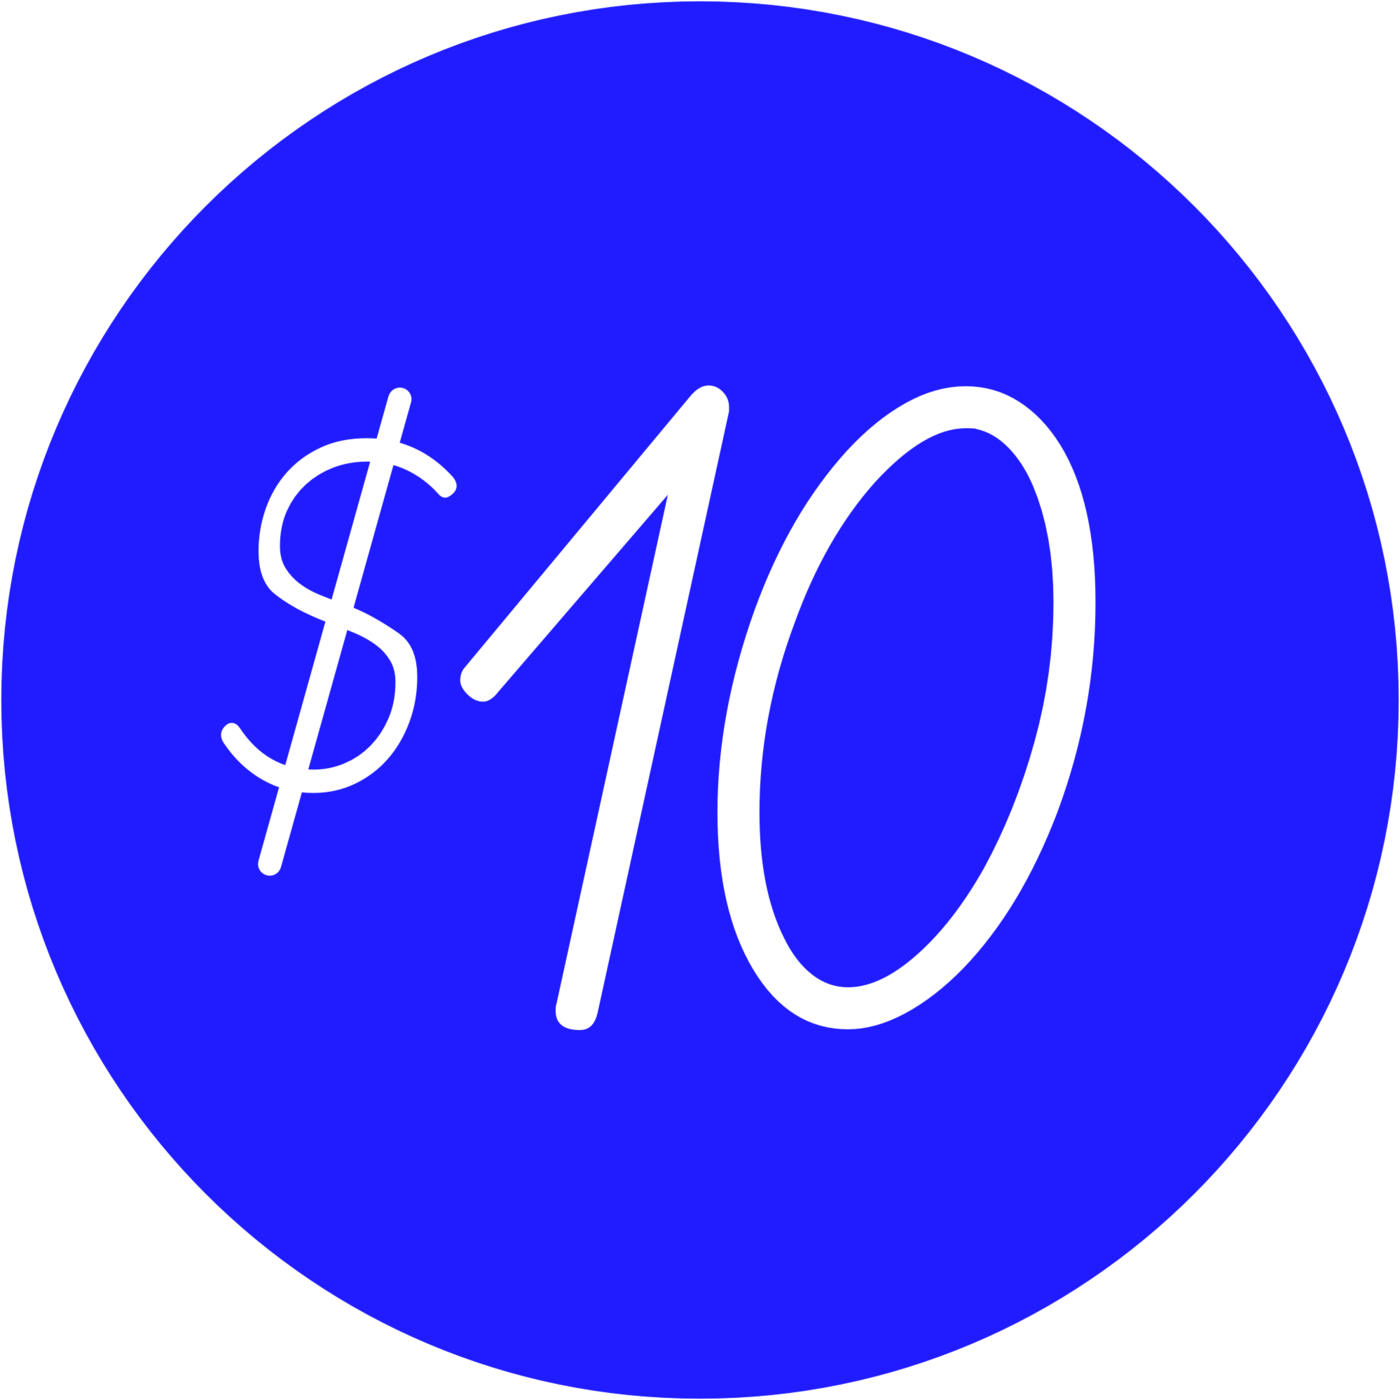 $10 png donation. Institute of contemporary art